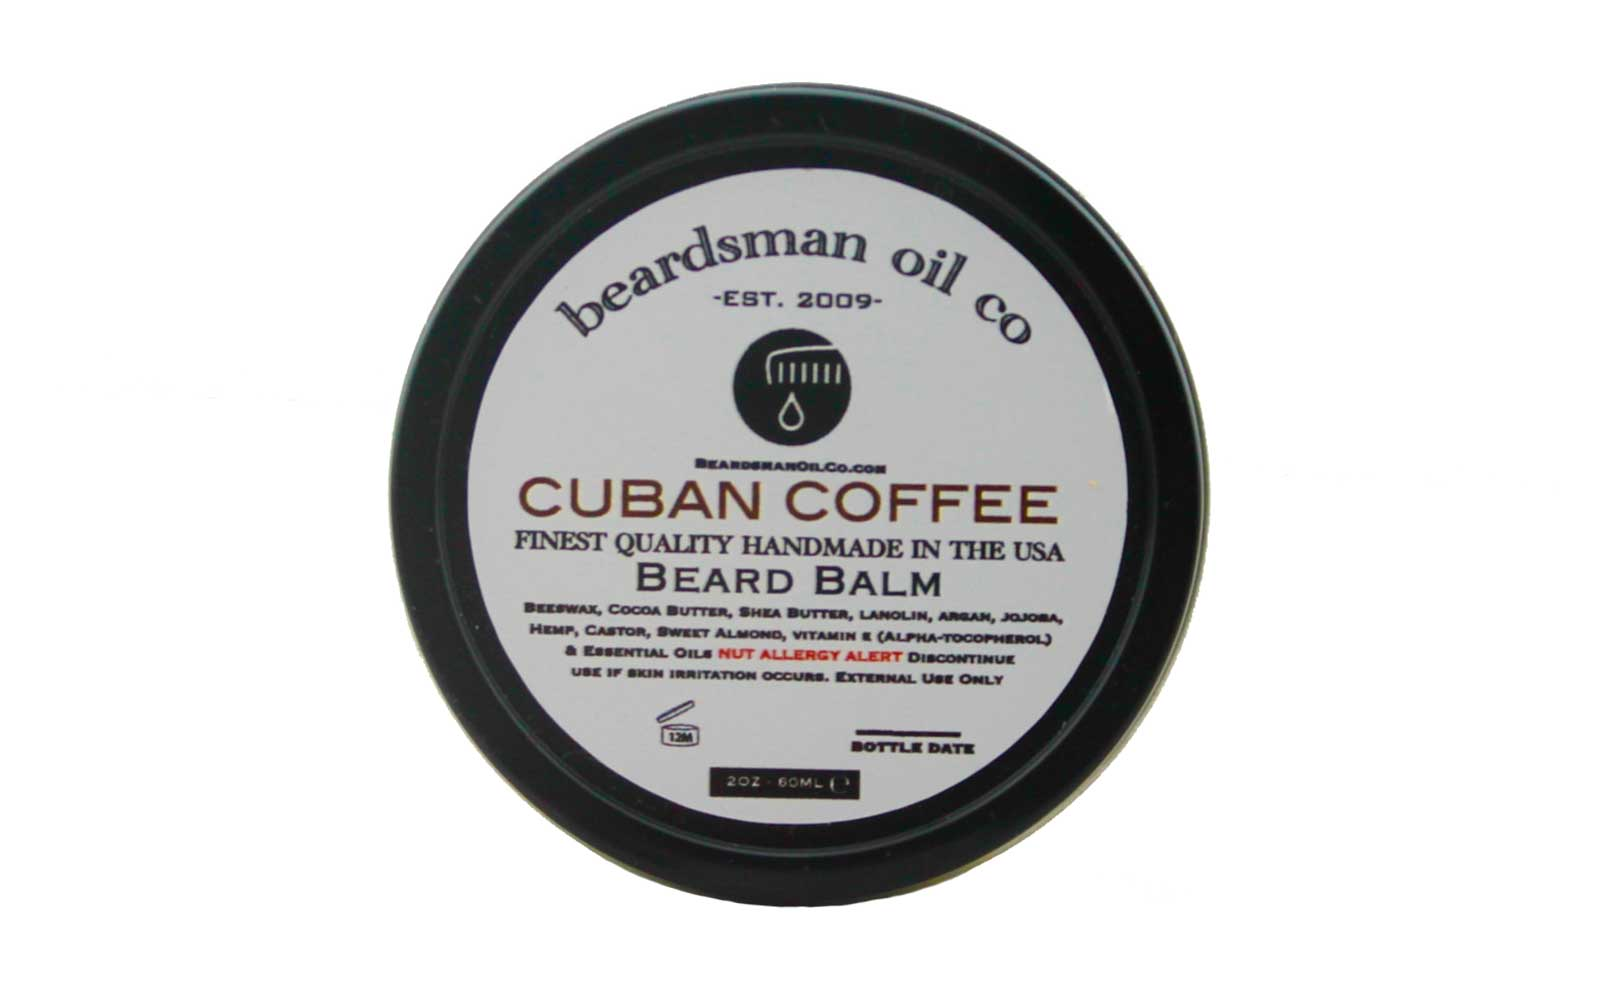 Coffee Beard Balm from Beardsman Oil Co